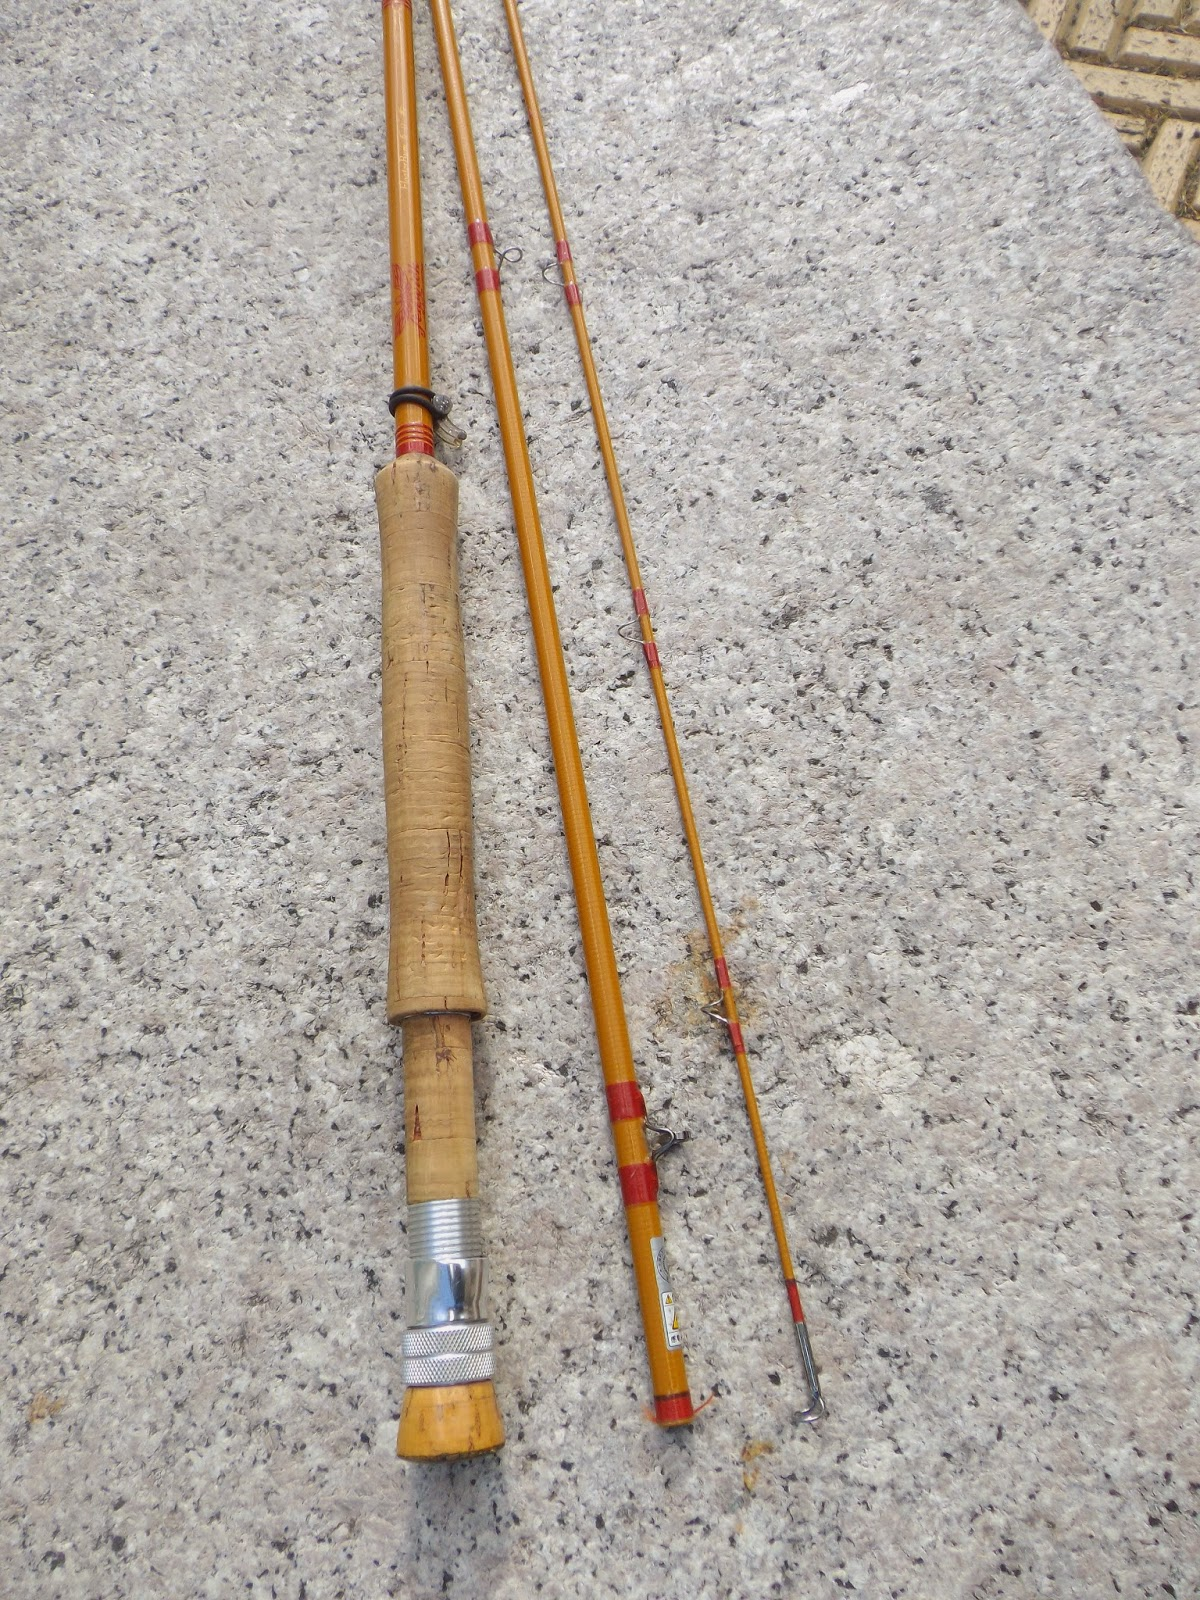 Japanese fiberglass flyrods the great lakes of nyc for Fiberglass fishing rods